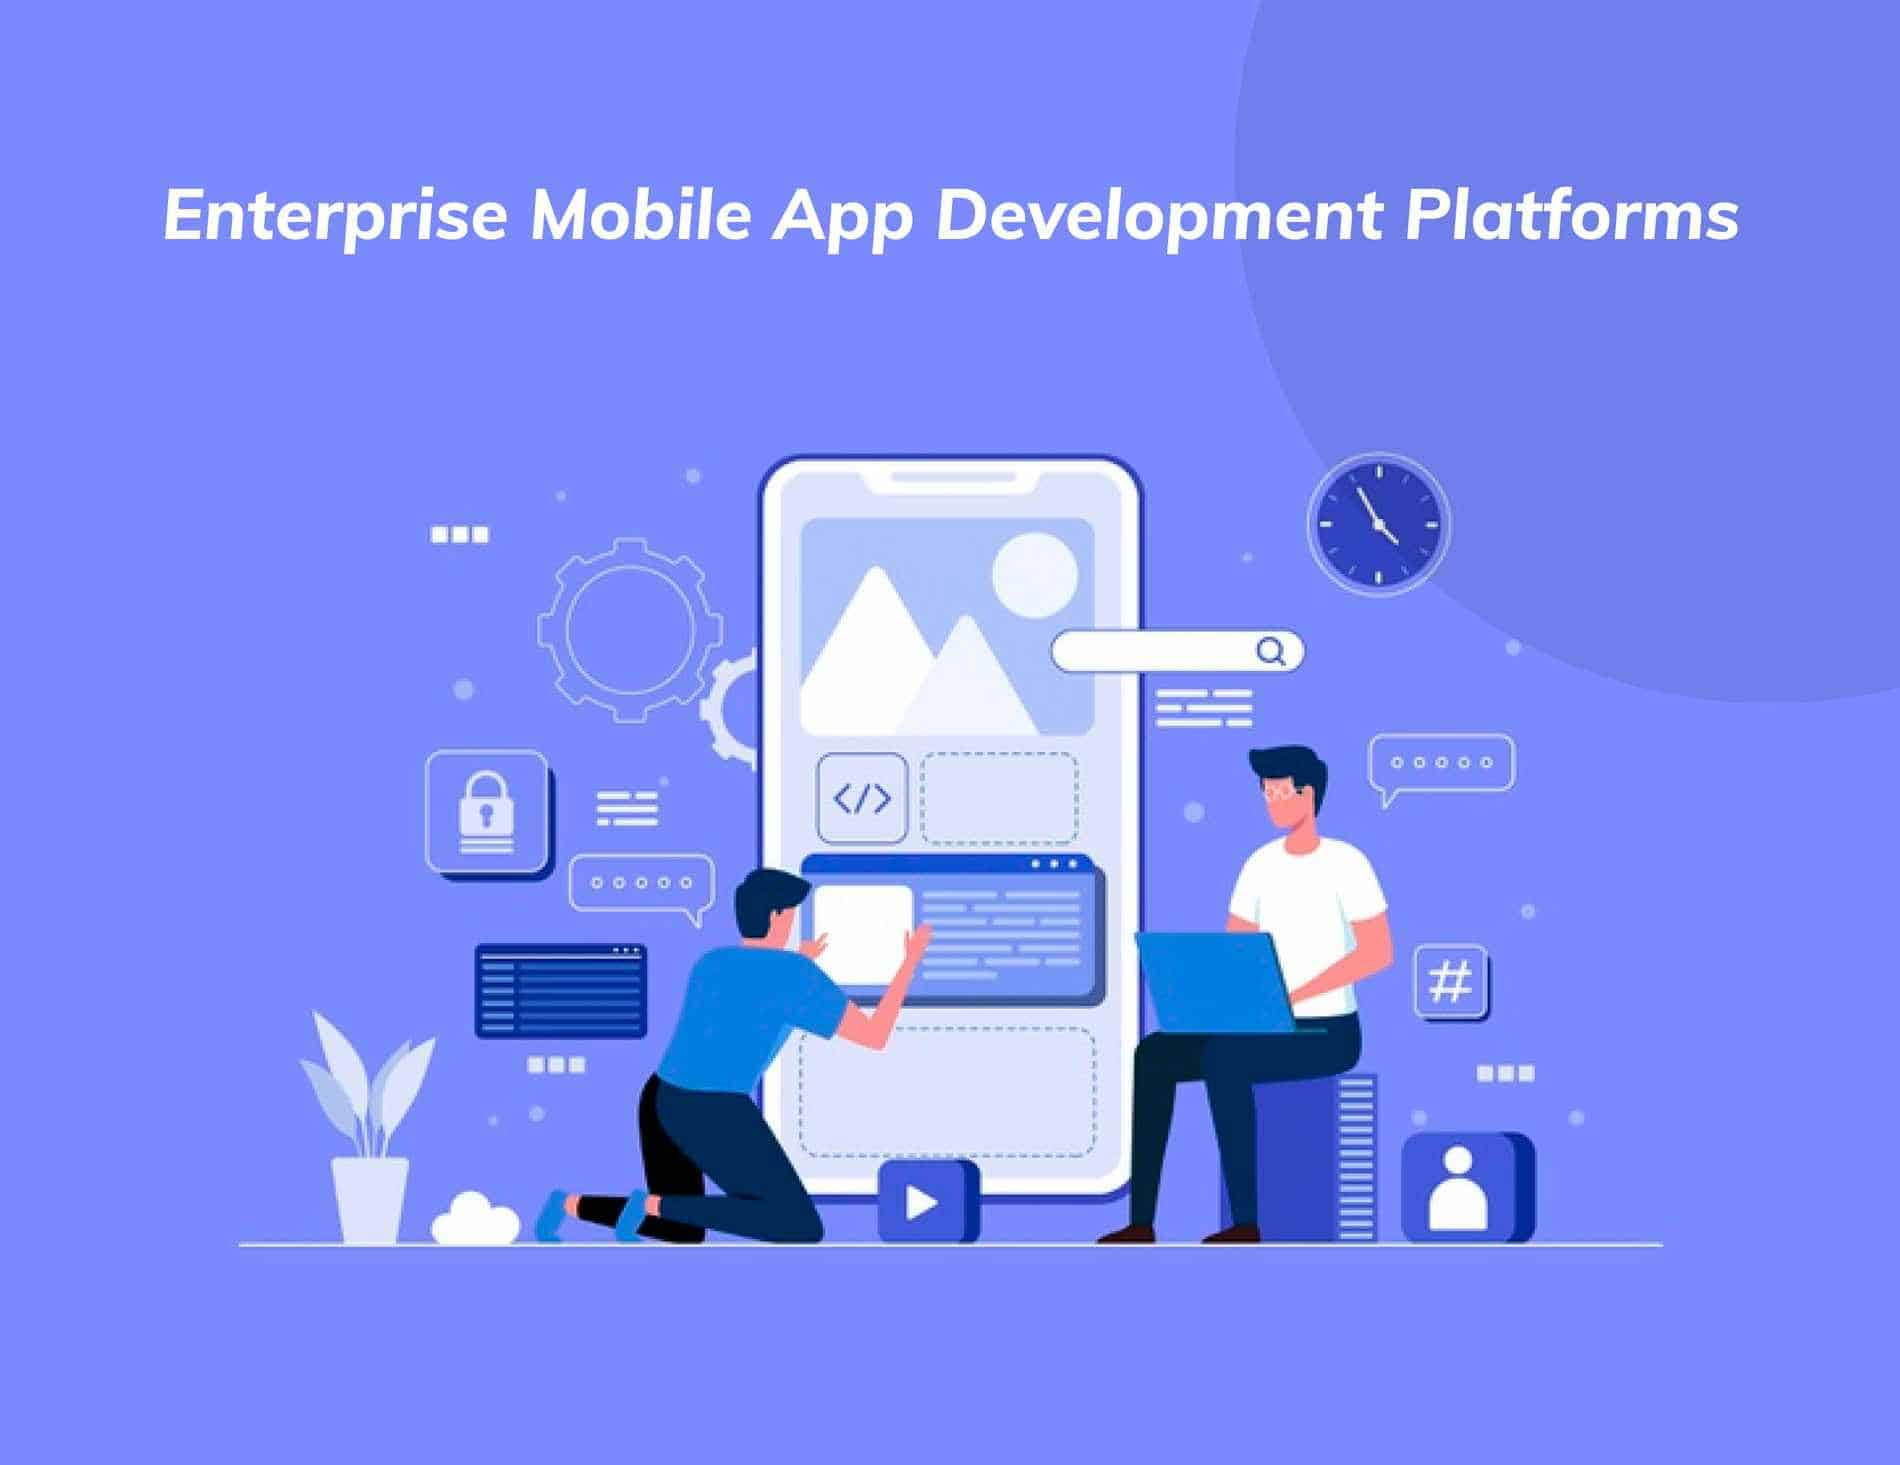 two persons developing an enterprise mobile app